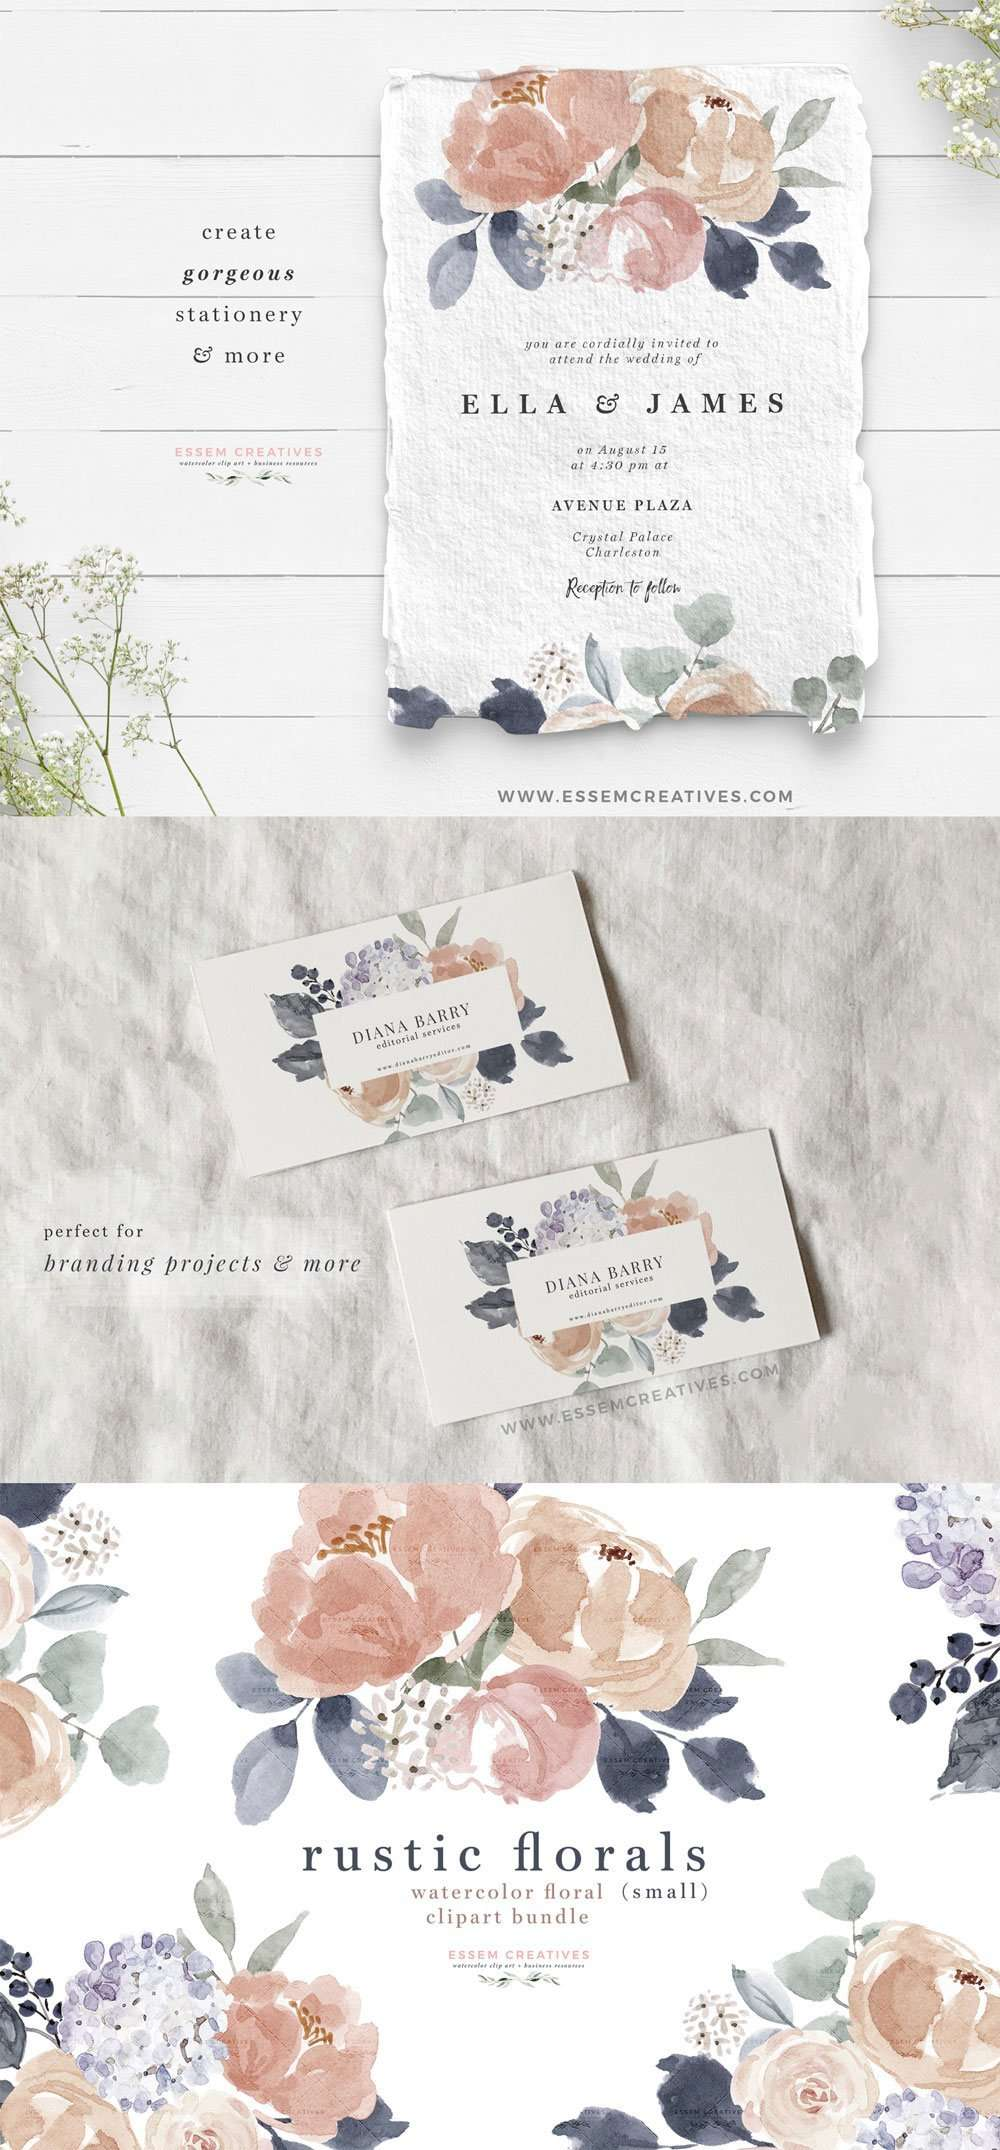 Rustic Watercolor Flowers Clipart, Floral Borders Frames, Dusty Rose Blush Navy Wedding Invitation Graphics Commercial Use | Use these design illustrations to create floral watercolour wedding invitations, save the date, gift tags, greeting cards, bridal shower invites, Kids Birthday Party invitations, menu card, table numbers, School posters, spring summer flyers, logo branding stationery, for your family or business and more. Click to see more>> #watercolor #weddinginvitations #scrapbooking